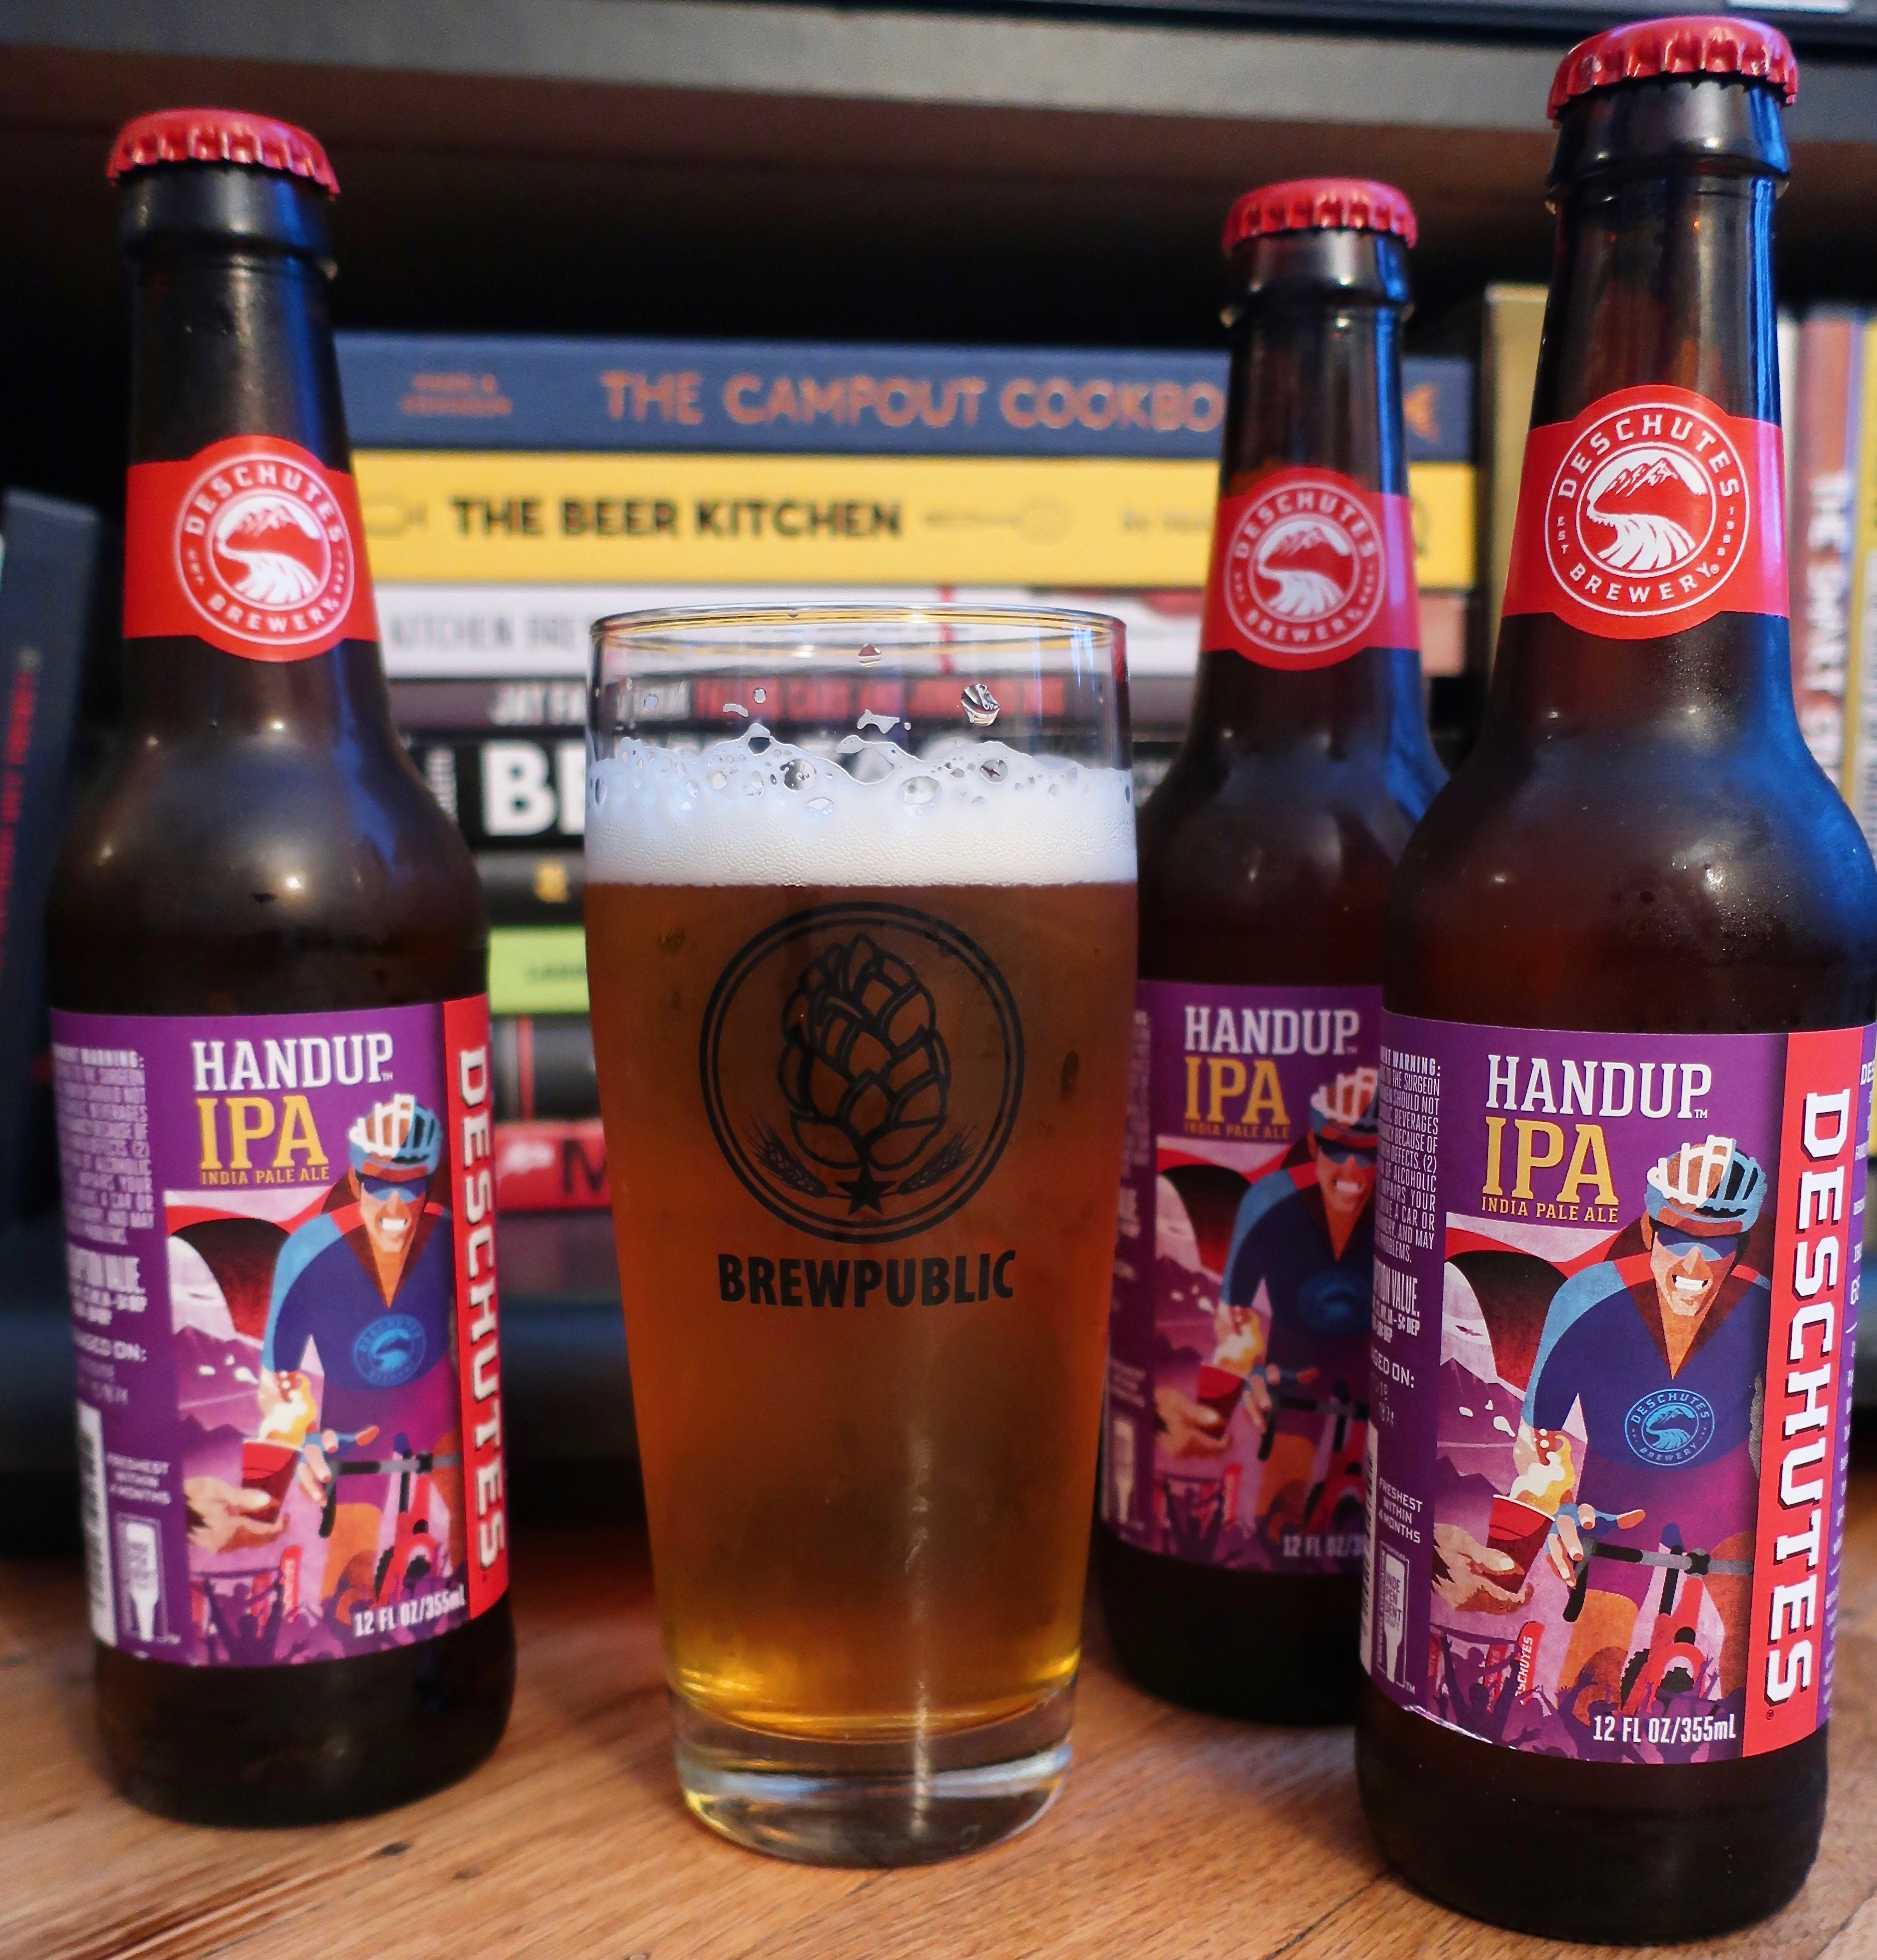 Deschutes Brewery has released a new year-round IPA with its new HandUp IPA.